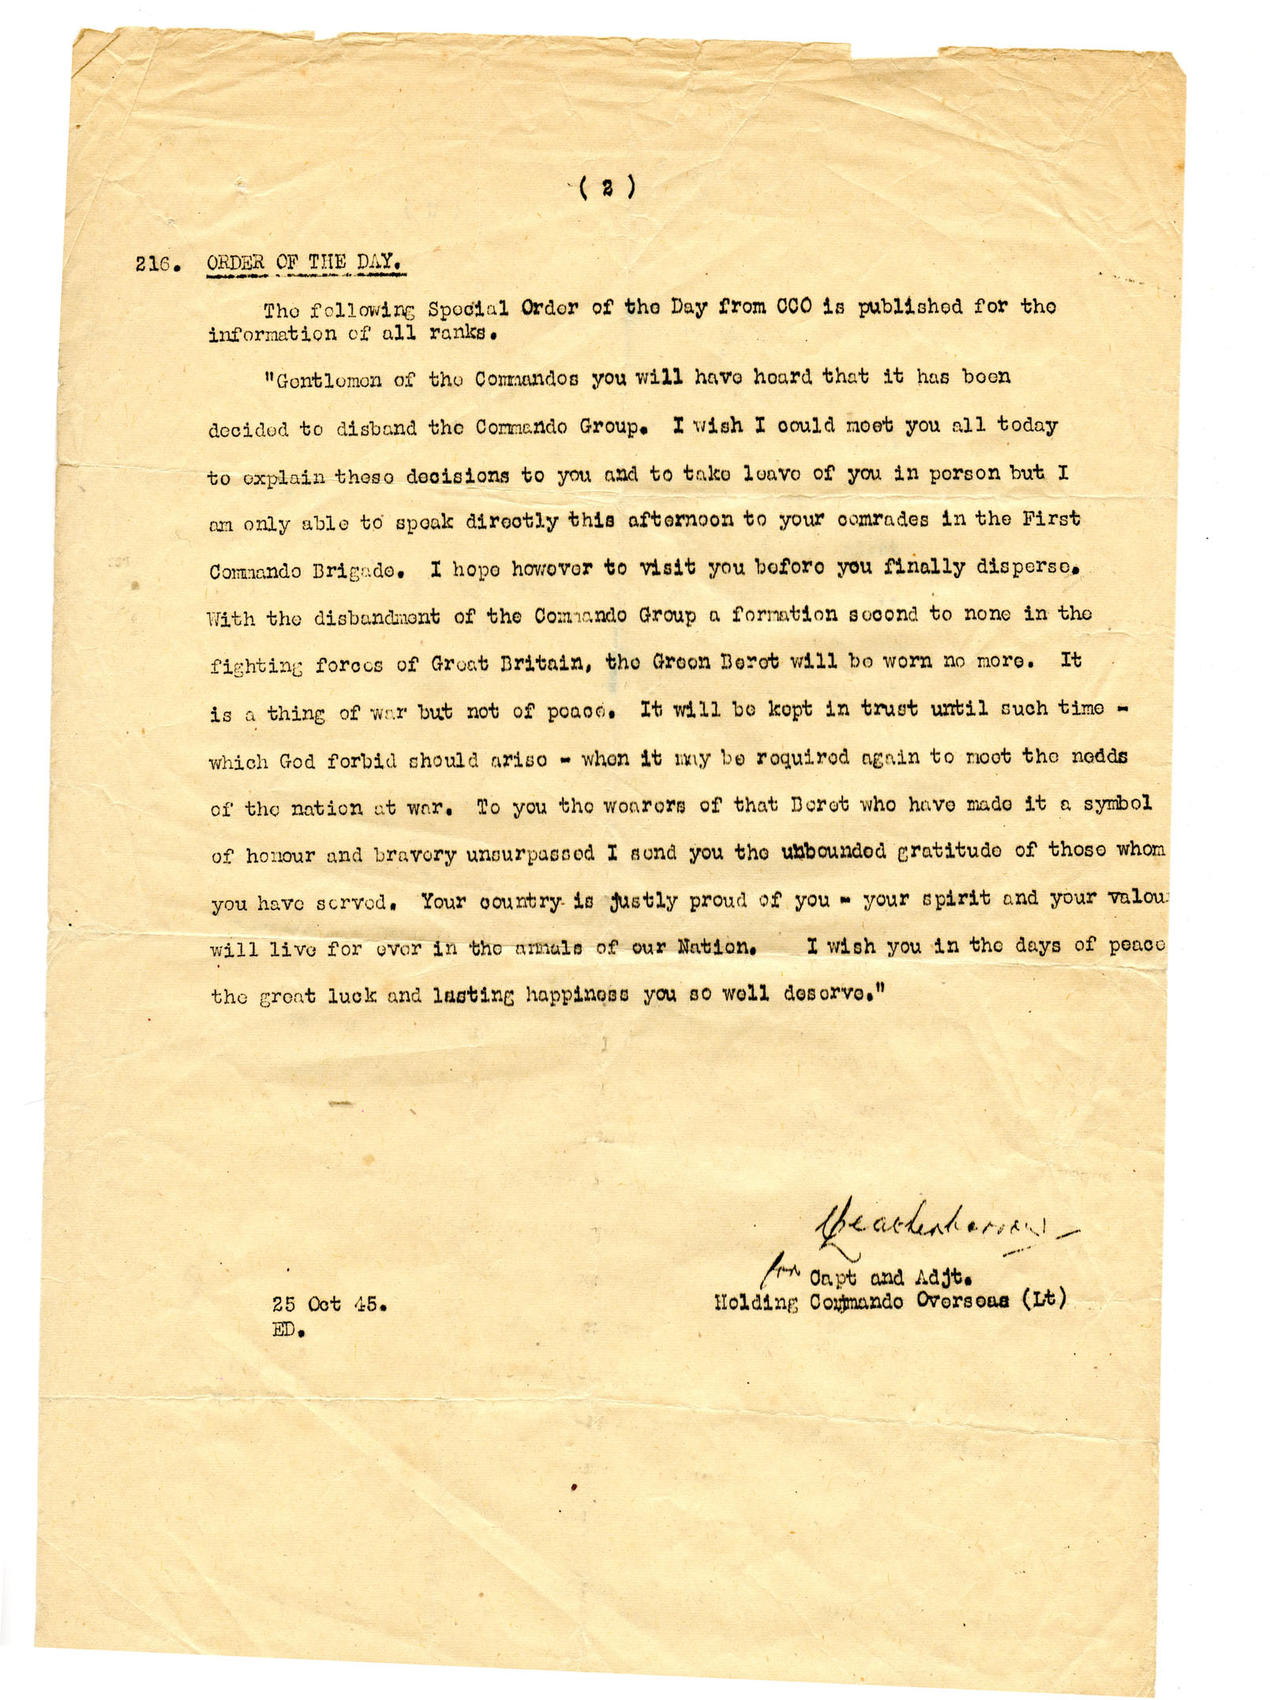 Holding Commando Overseas Special Order of the day dated 25 Oct.45